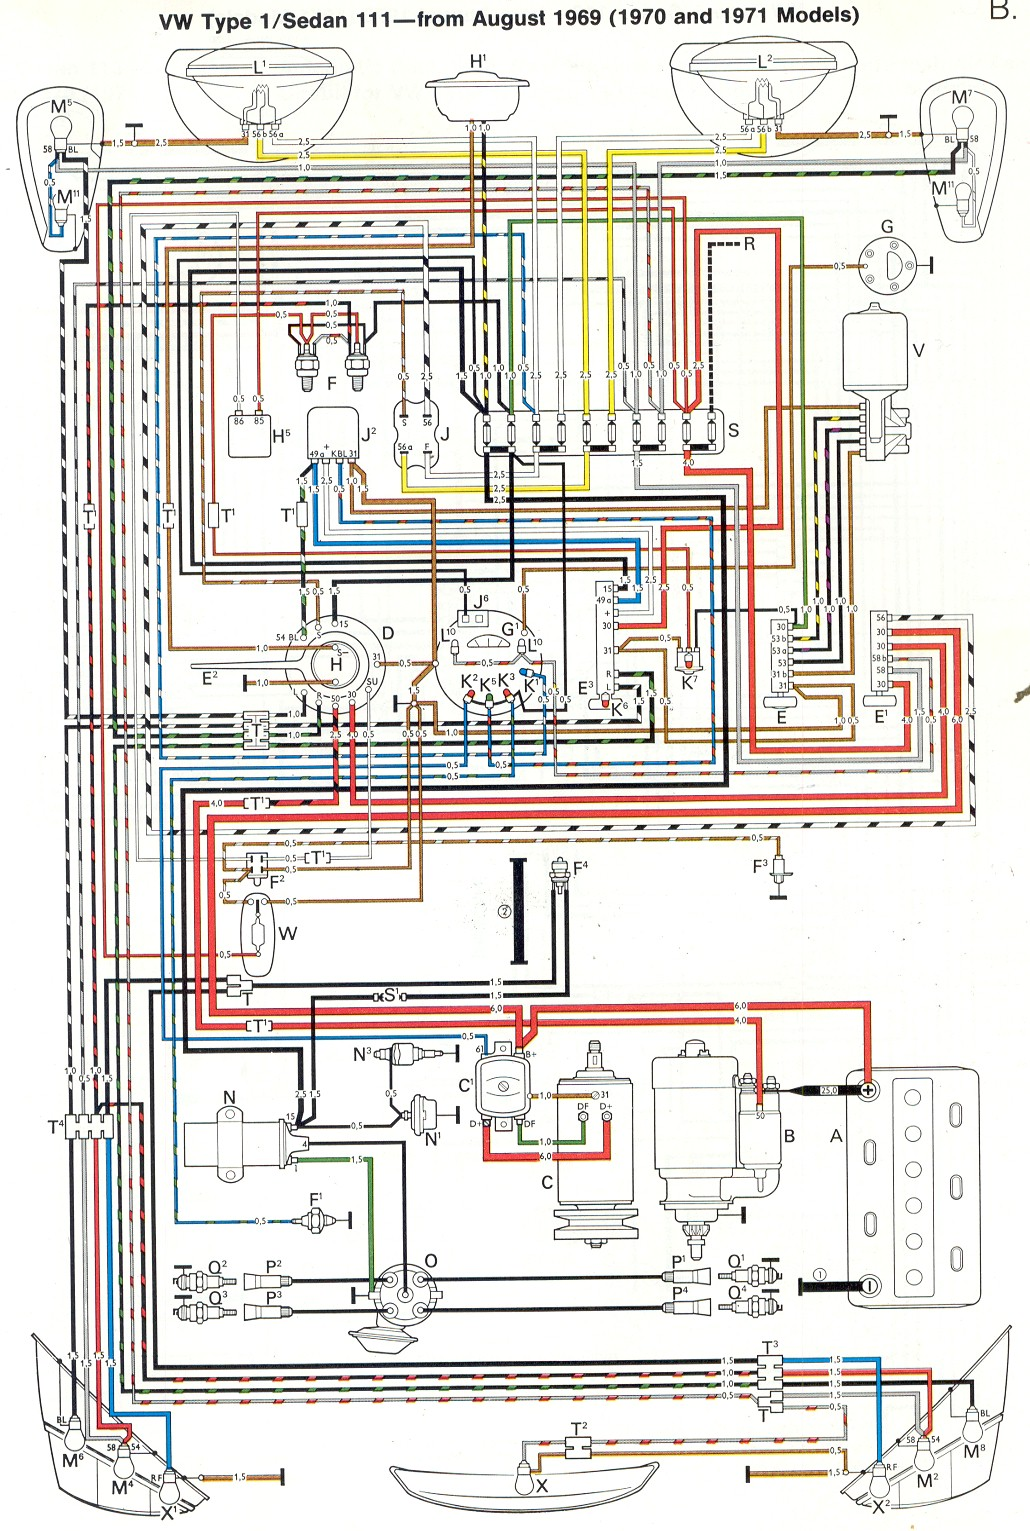 74 Vw Beetle Wiring Diagram Schematic Automotive Fuse Box For 1974 Super 72 Third Level Rh 20 19 21 Jacobwinterstein Com